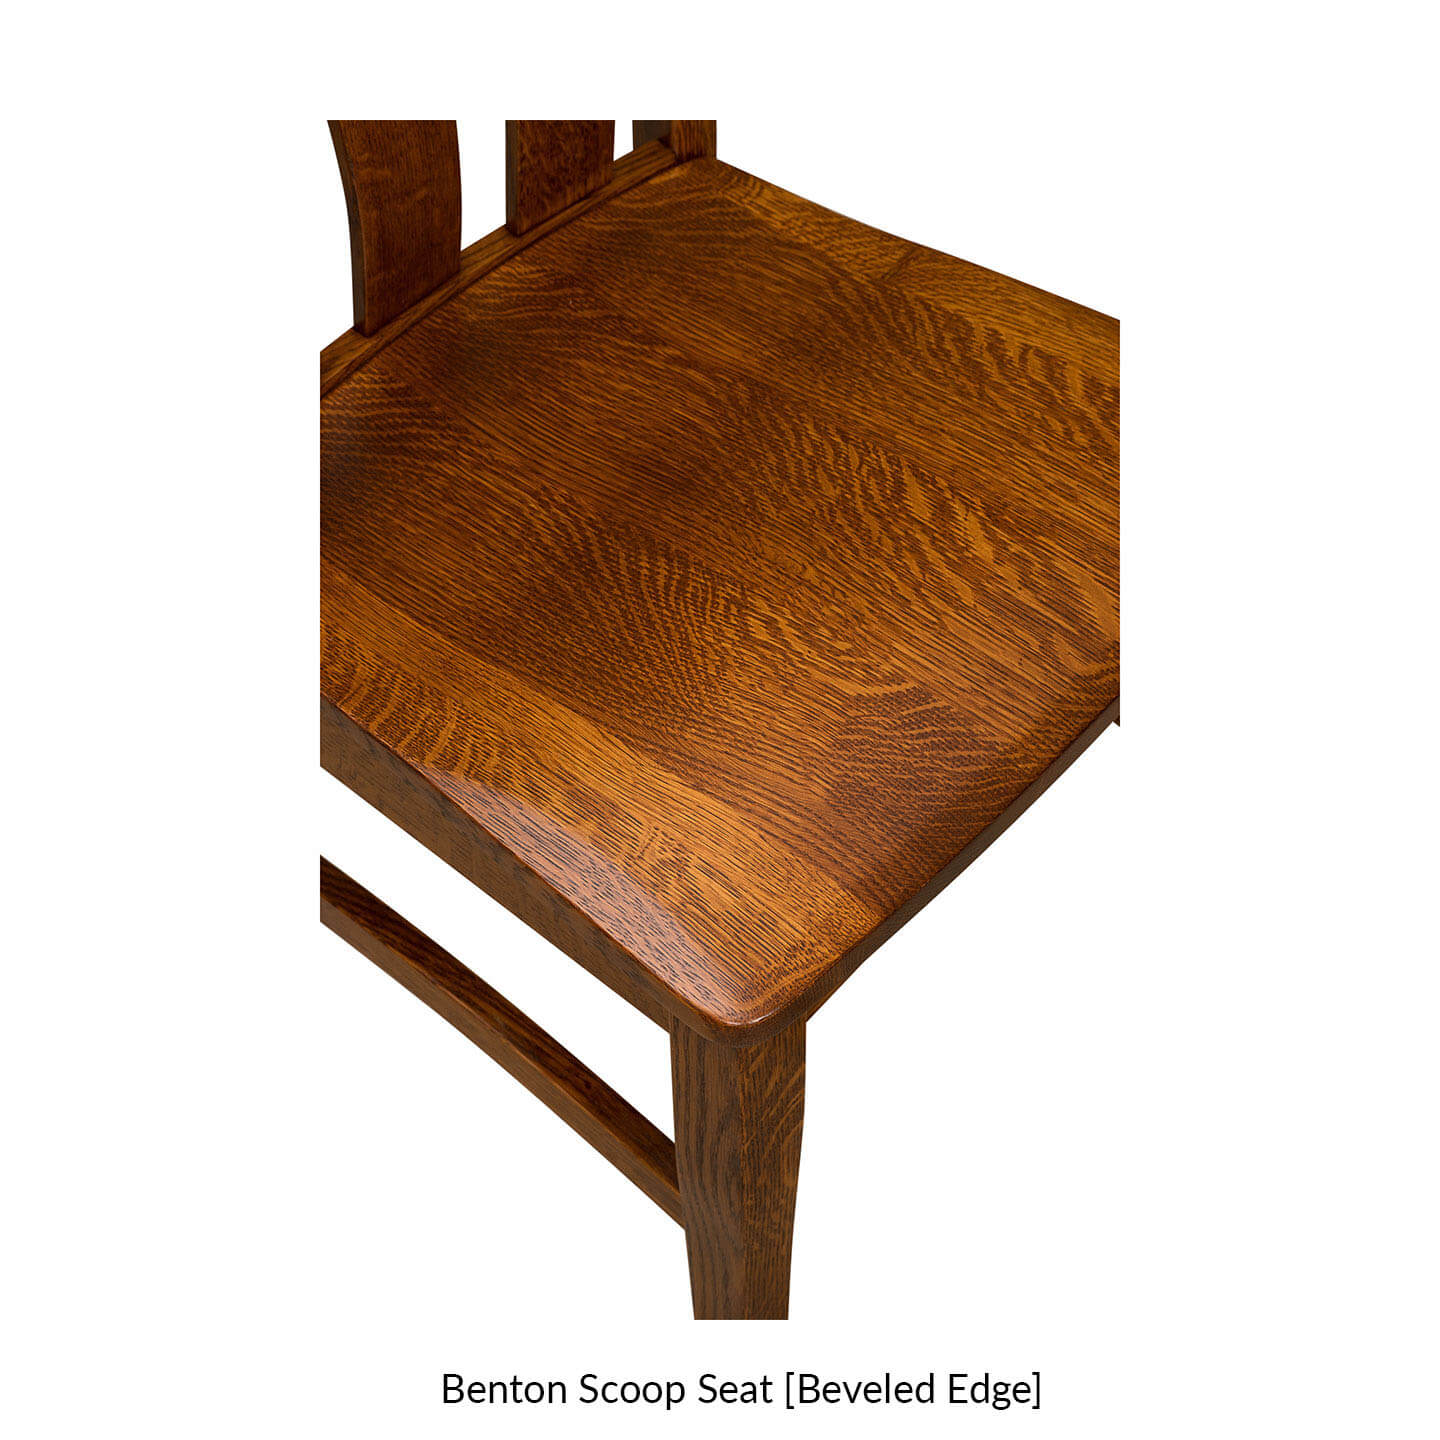 2-benton-scoop-seat-beveled-edge-.jpg